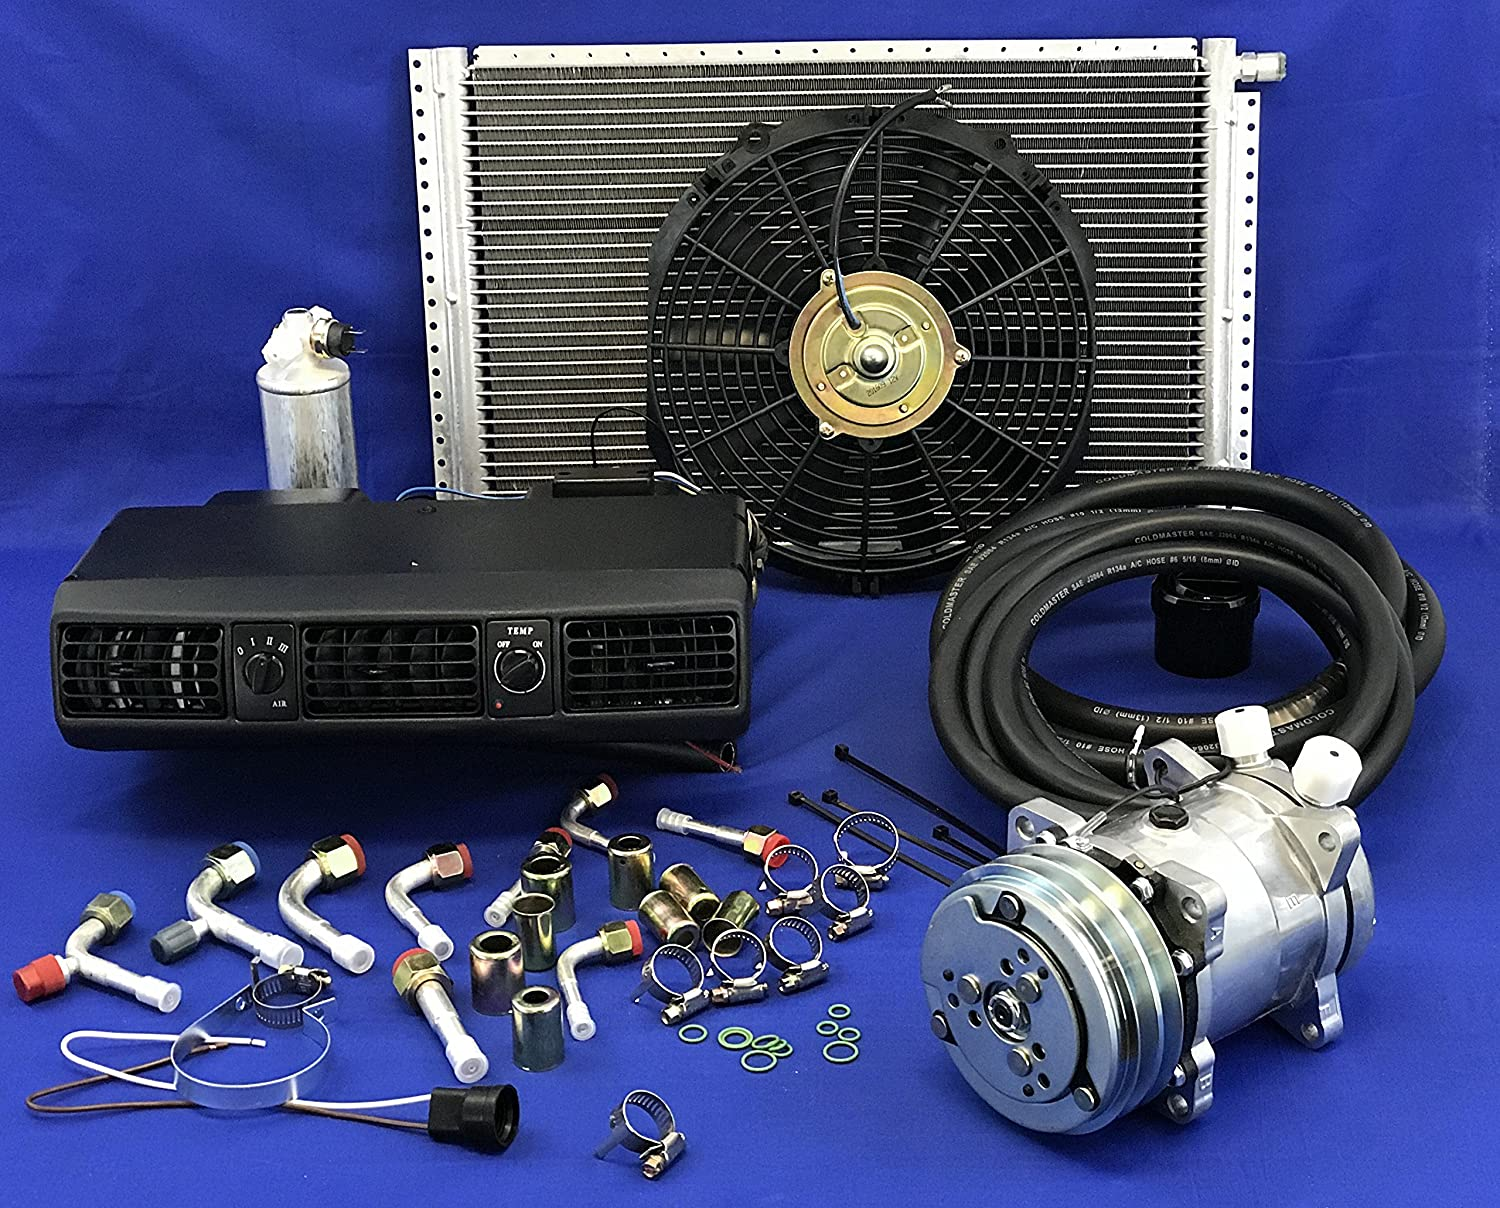 A/C KIT Universal Under Dash Evaporator Compressor KIT AIR Conditioner 202-1 W/Electrical Harness